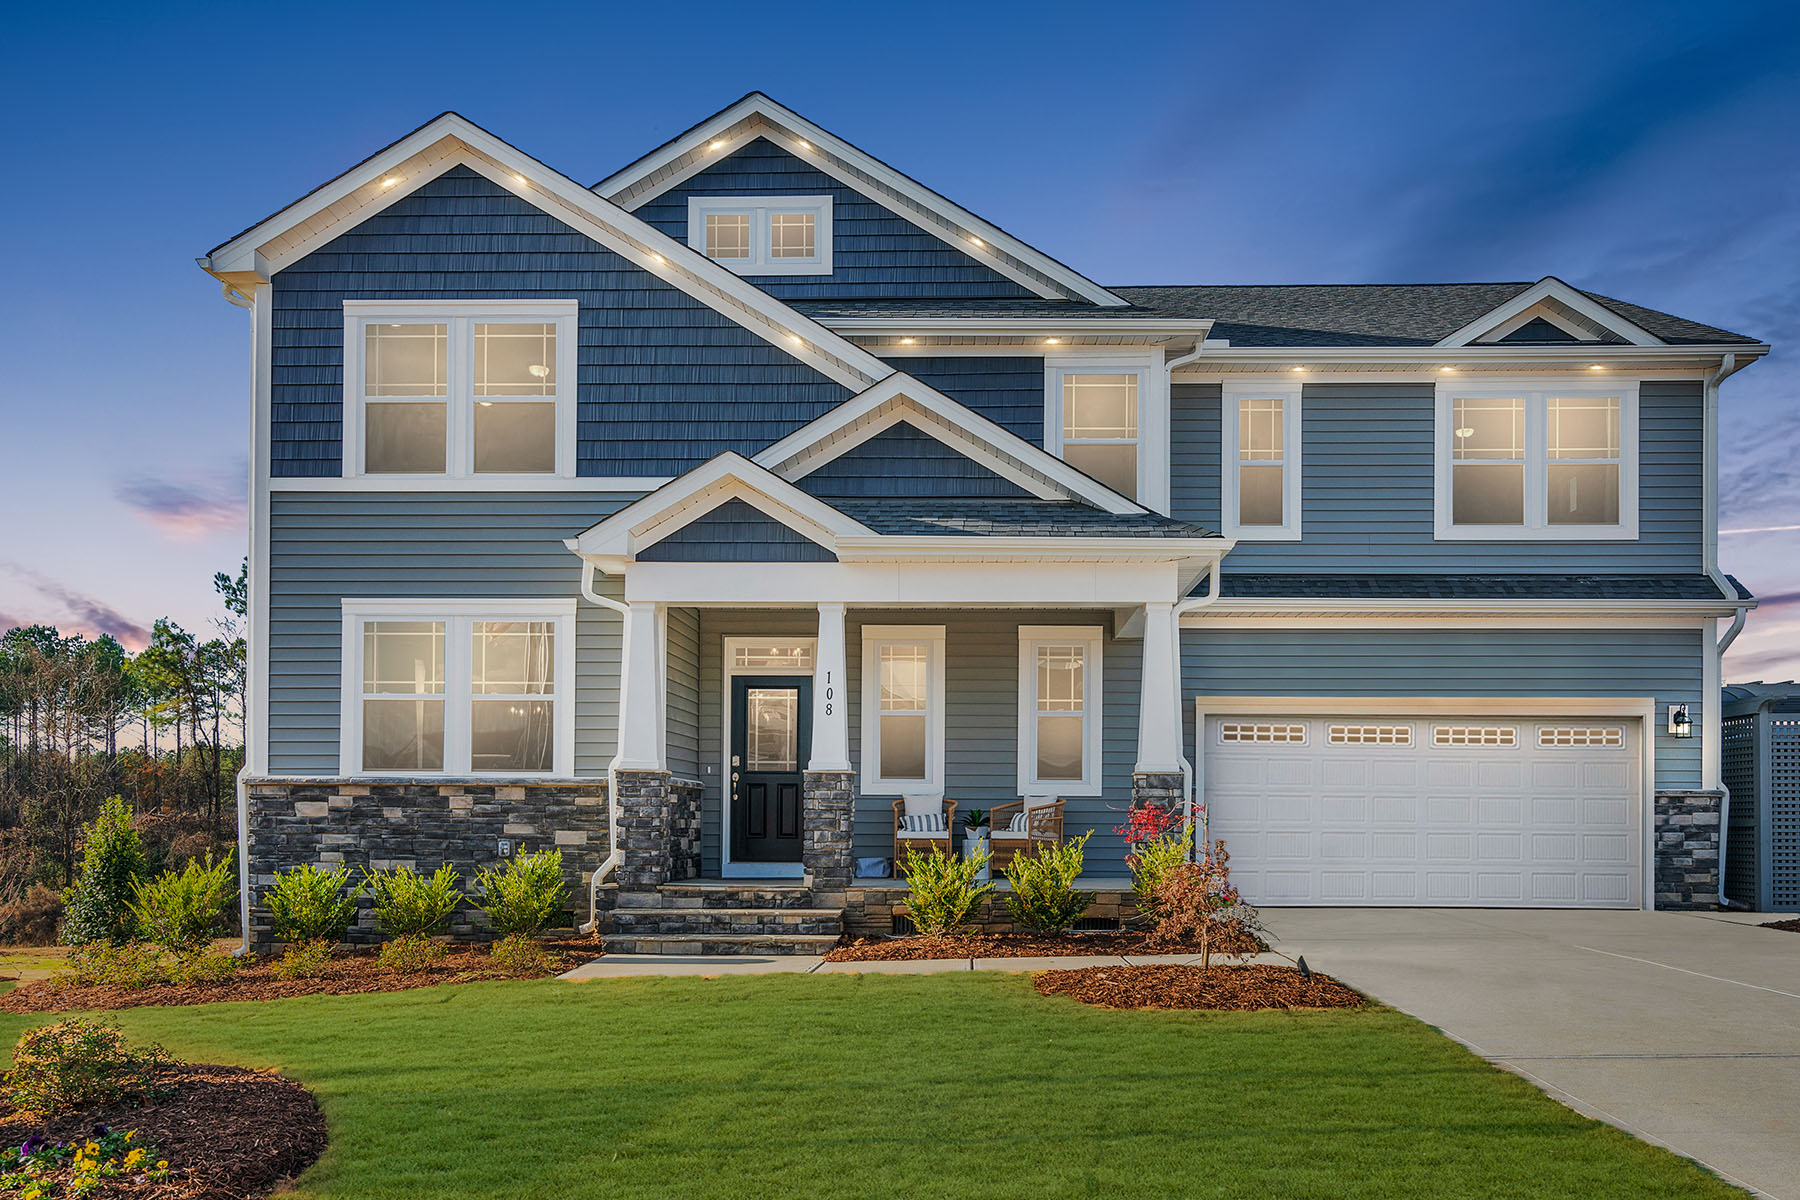 Parker Plan Elevation Front at Ballentine Place in Holly Springs North Carolina by Mattamy Homes